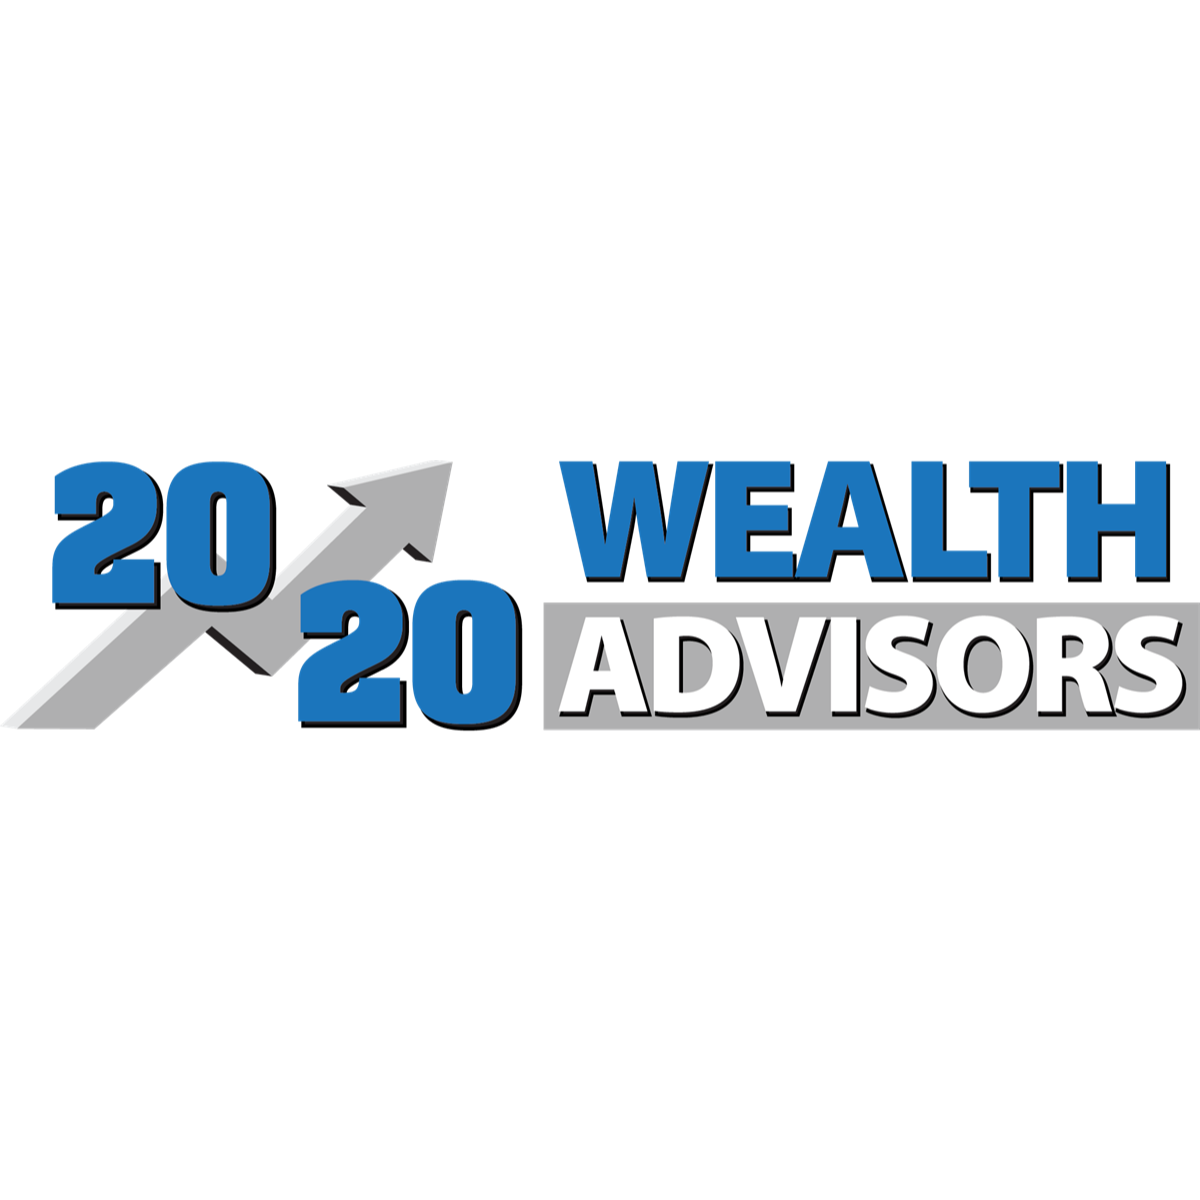 2020 Wealth Advisors